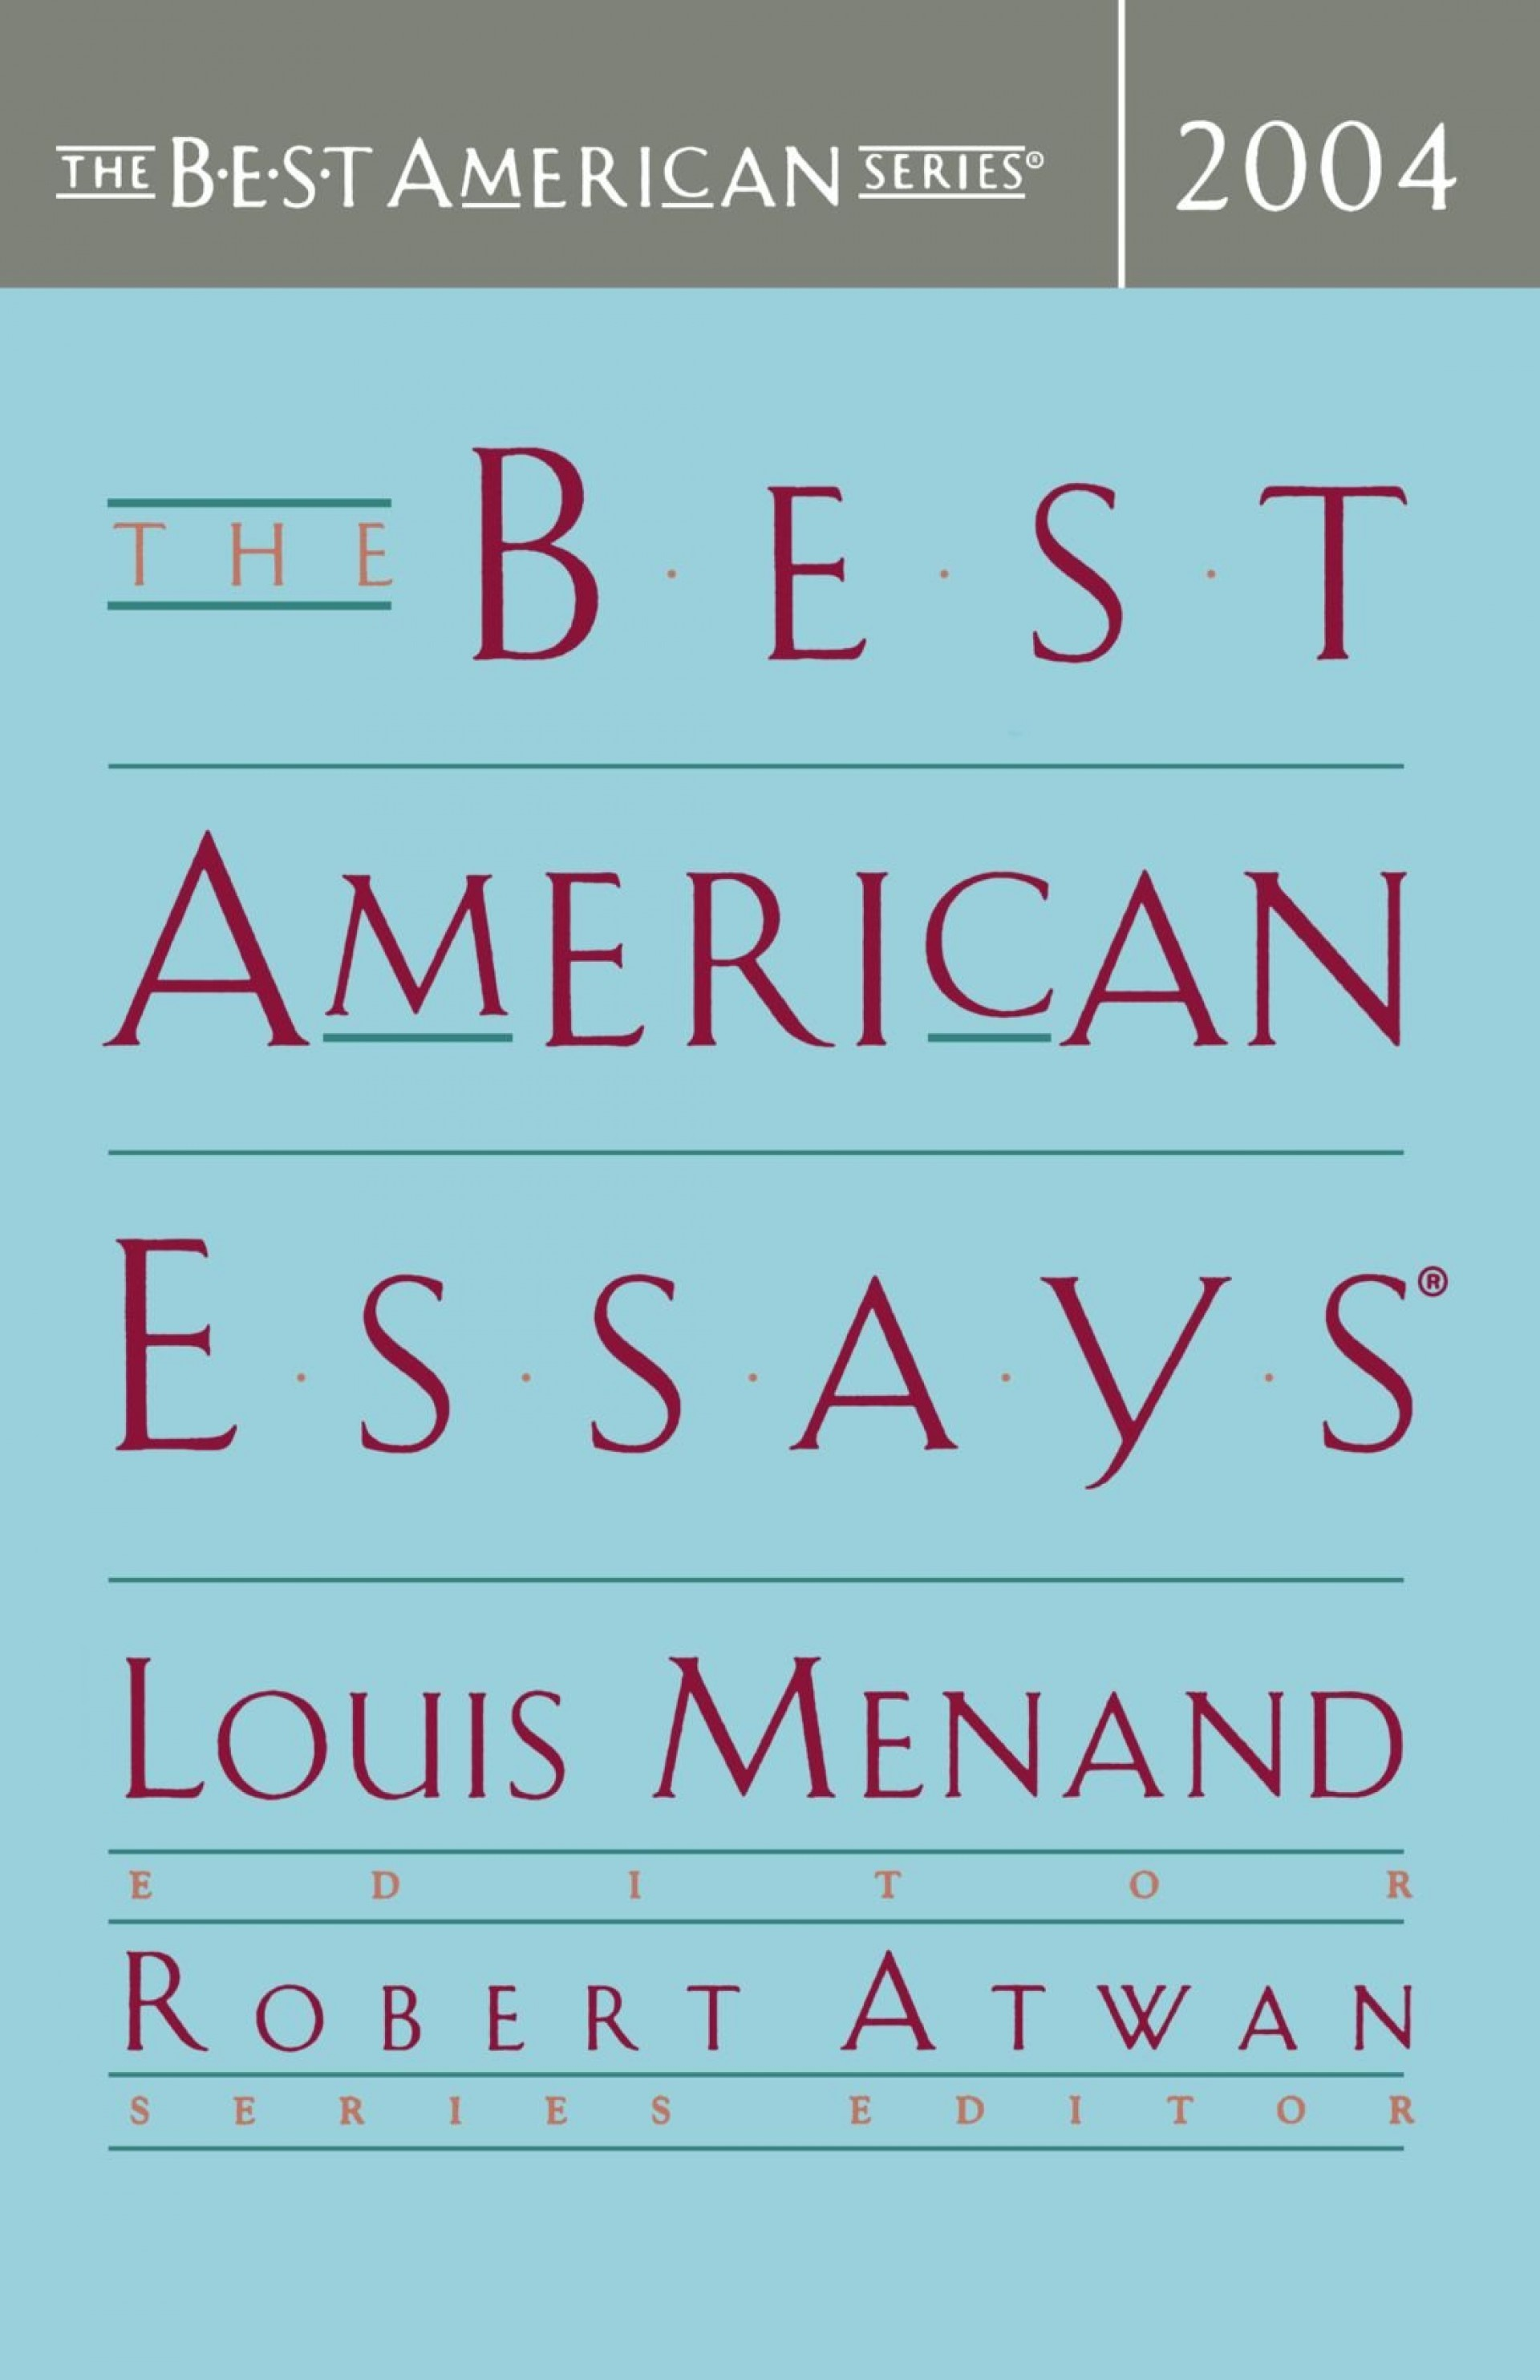 015 Essay Example The Best American Essays Wonderful 2013 Pdf Download Of Century Sparknotes 2017 1920